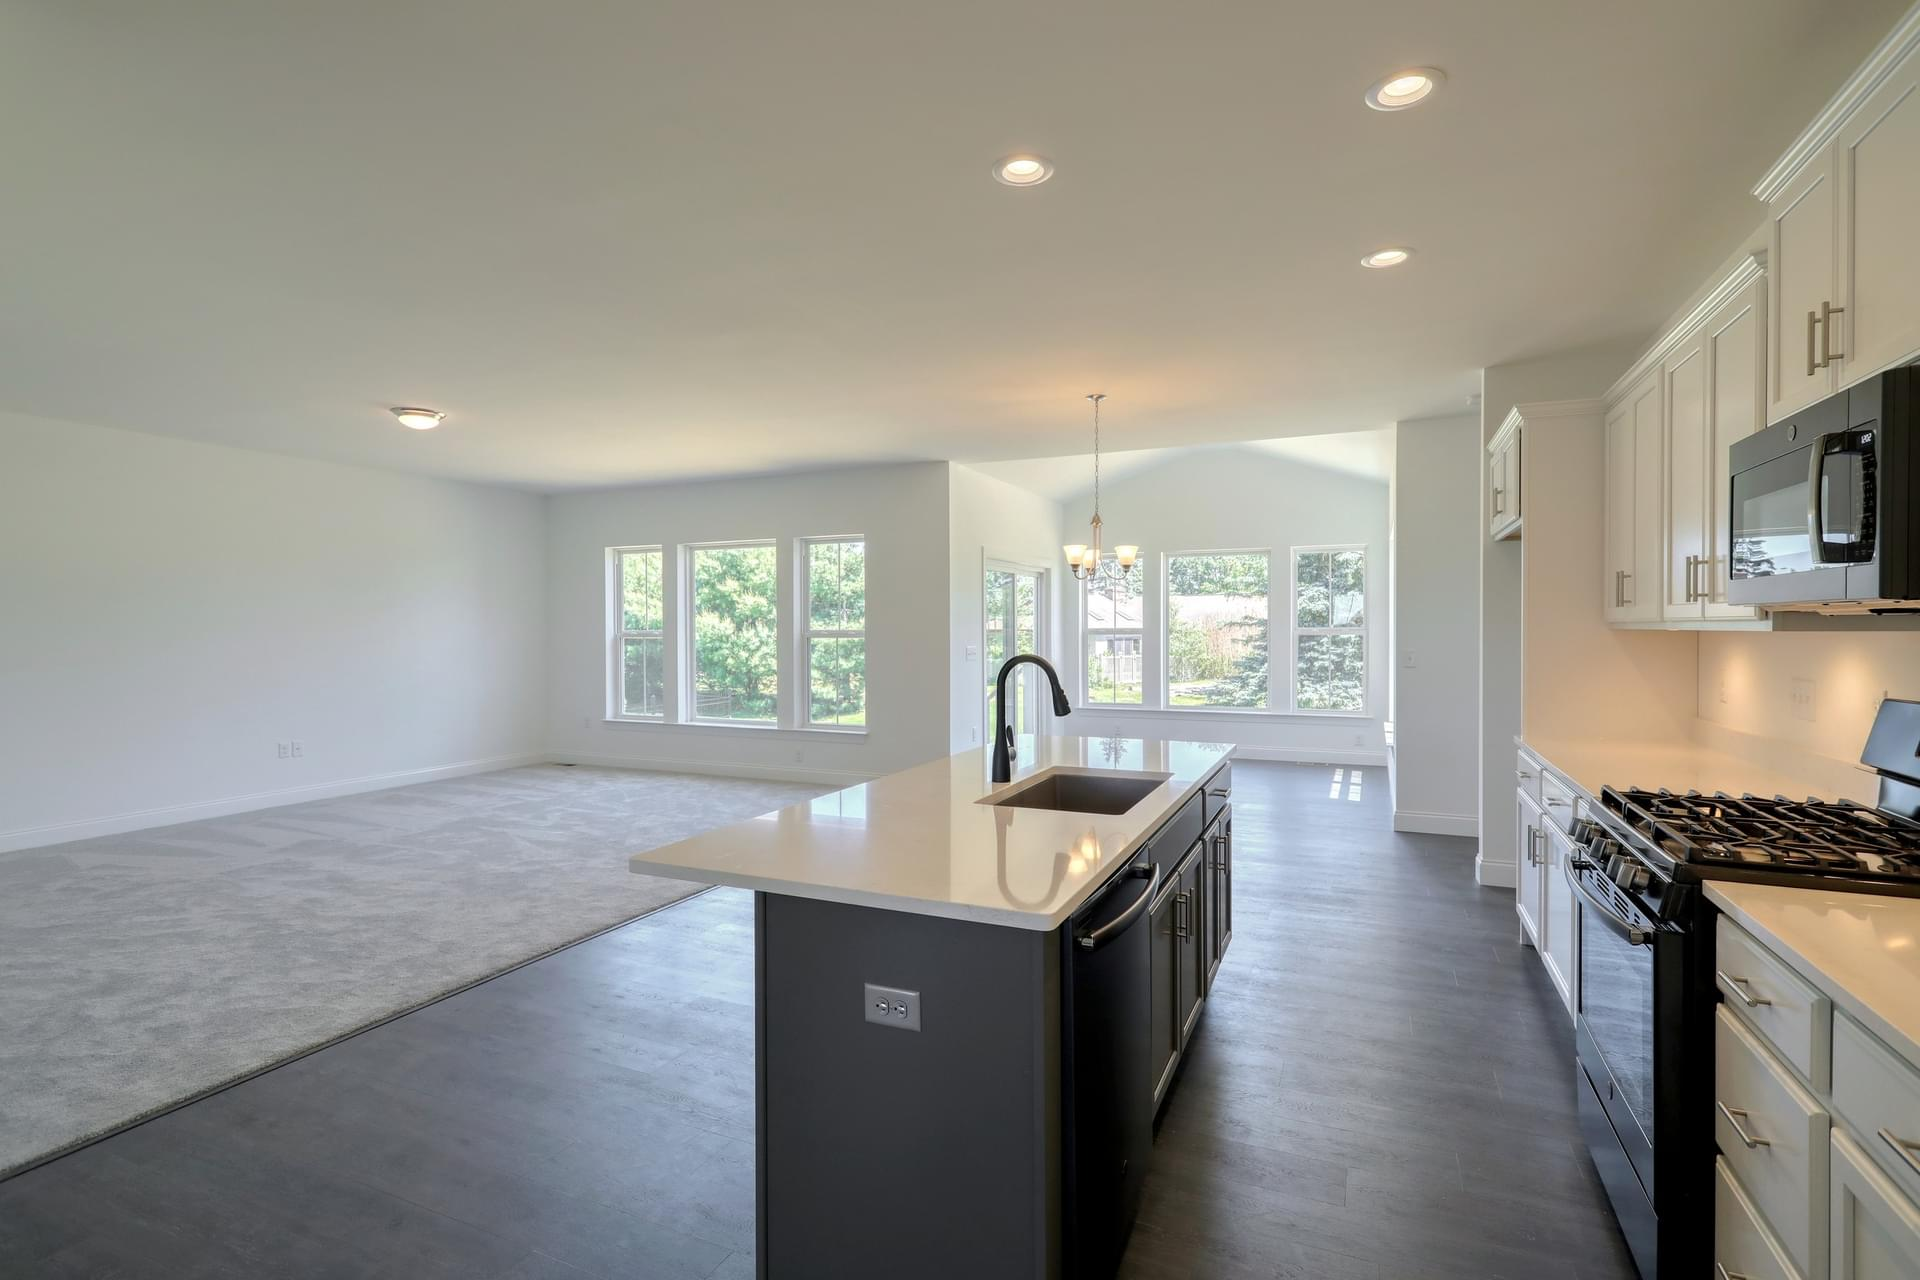 3br New Home in Morgantown, PA